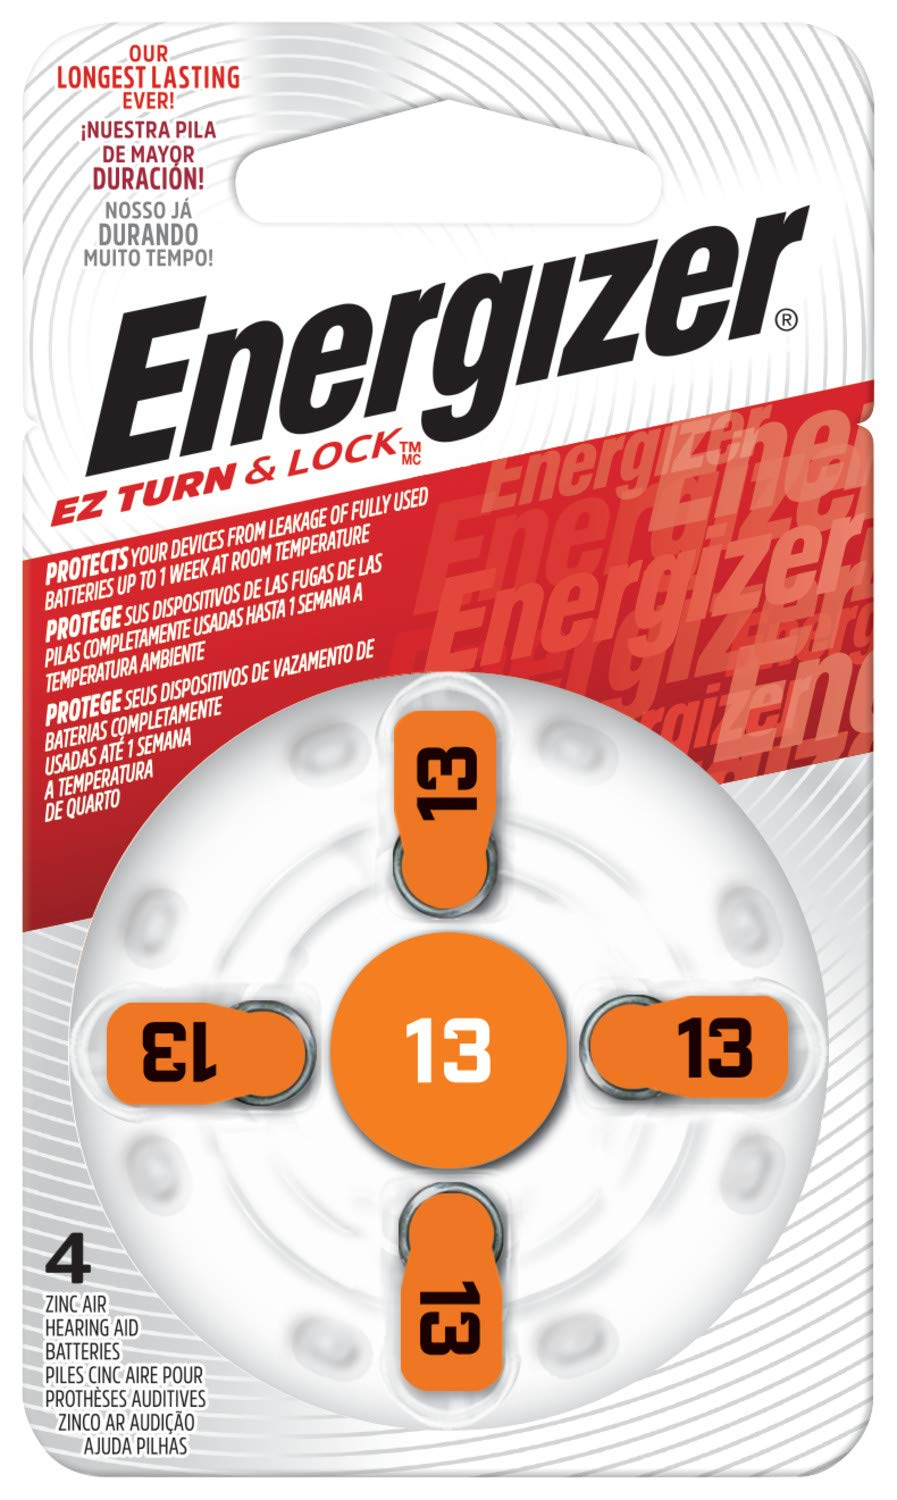 Energizer EZ Turn & Lock Size 13 Hearing Aid Battery, 96-Count by Energizer